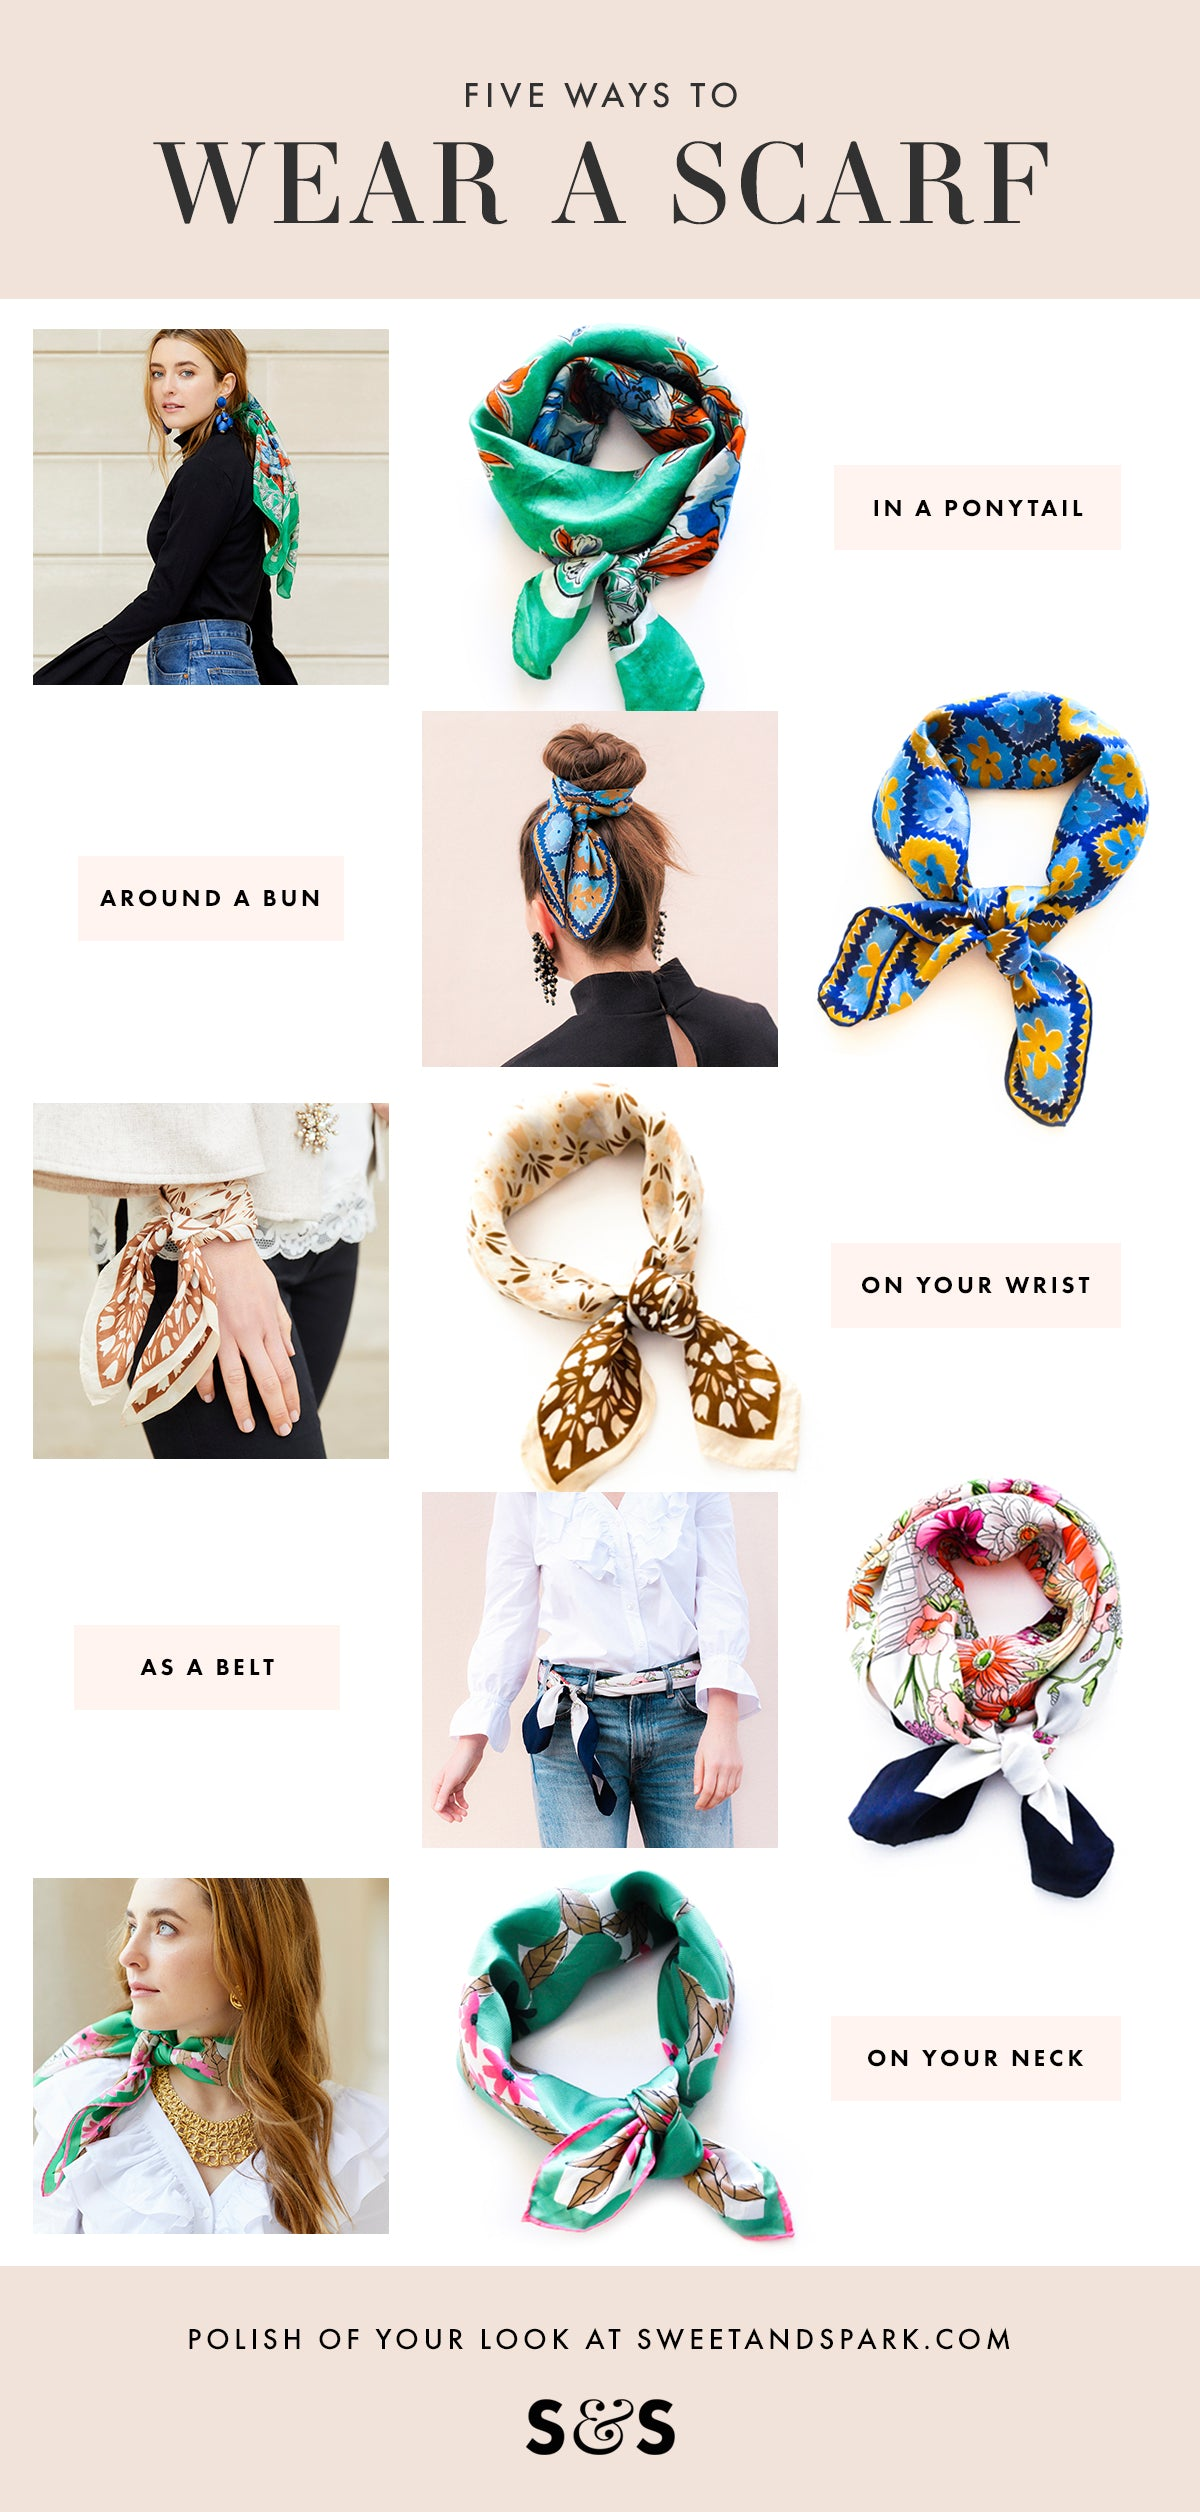 5 Ways to Wear a Scarf